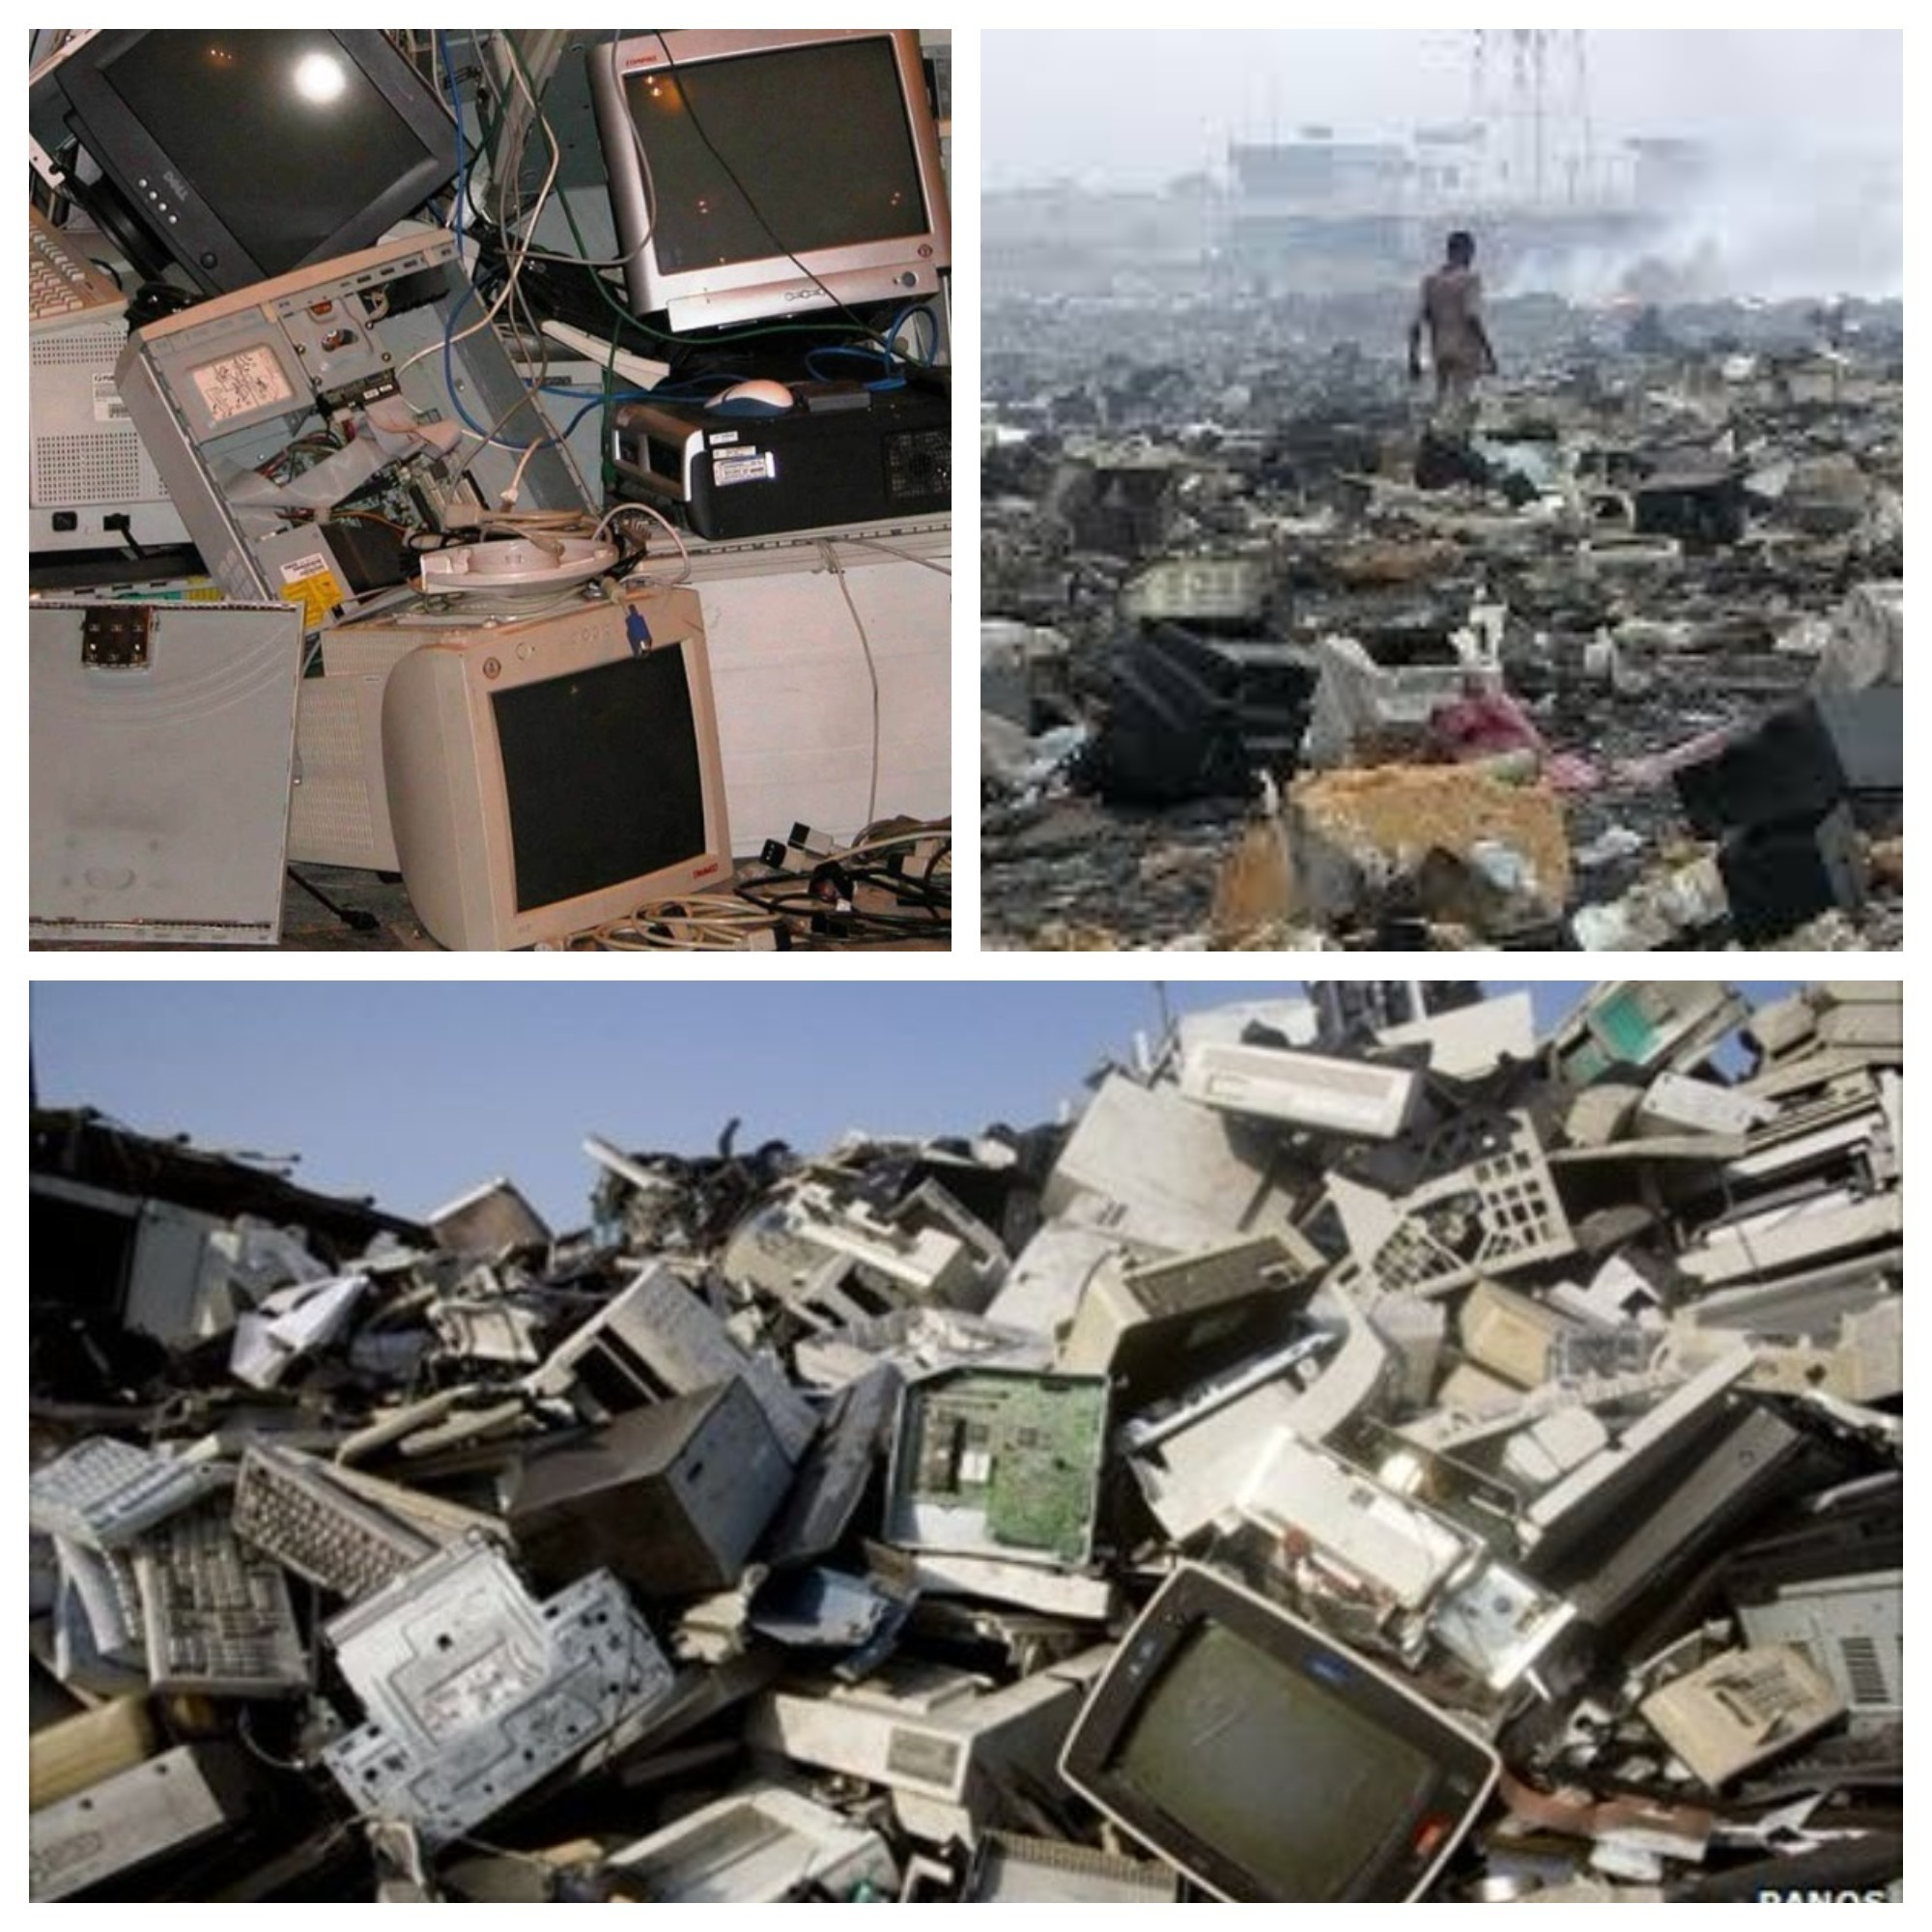 E Terra Comes To Rescue Nigeria West Africa From Waste Crisis Electronics Scrap Recycling Pictures